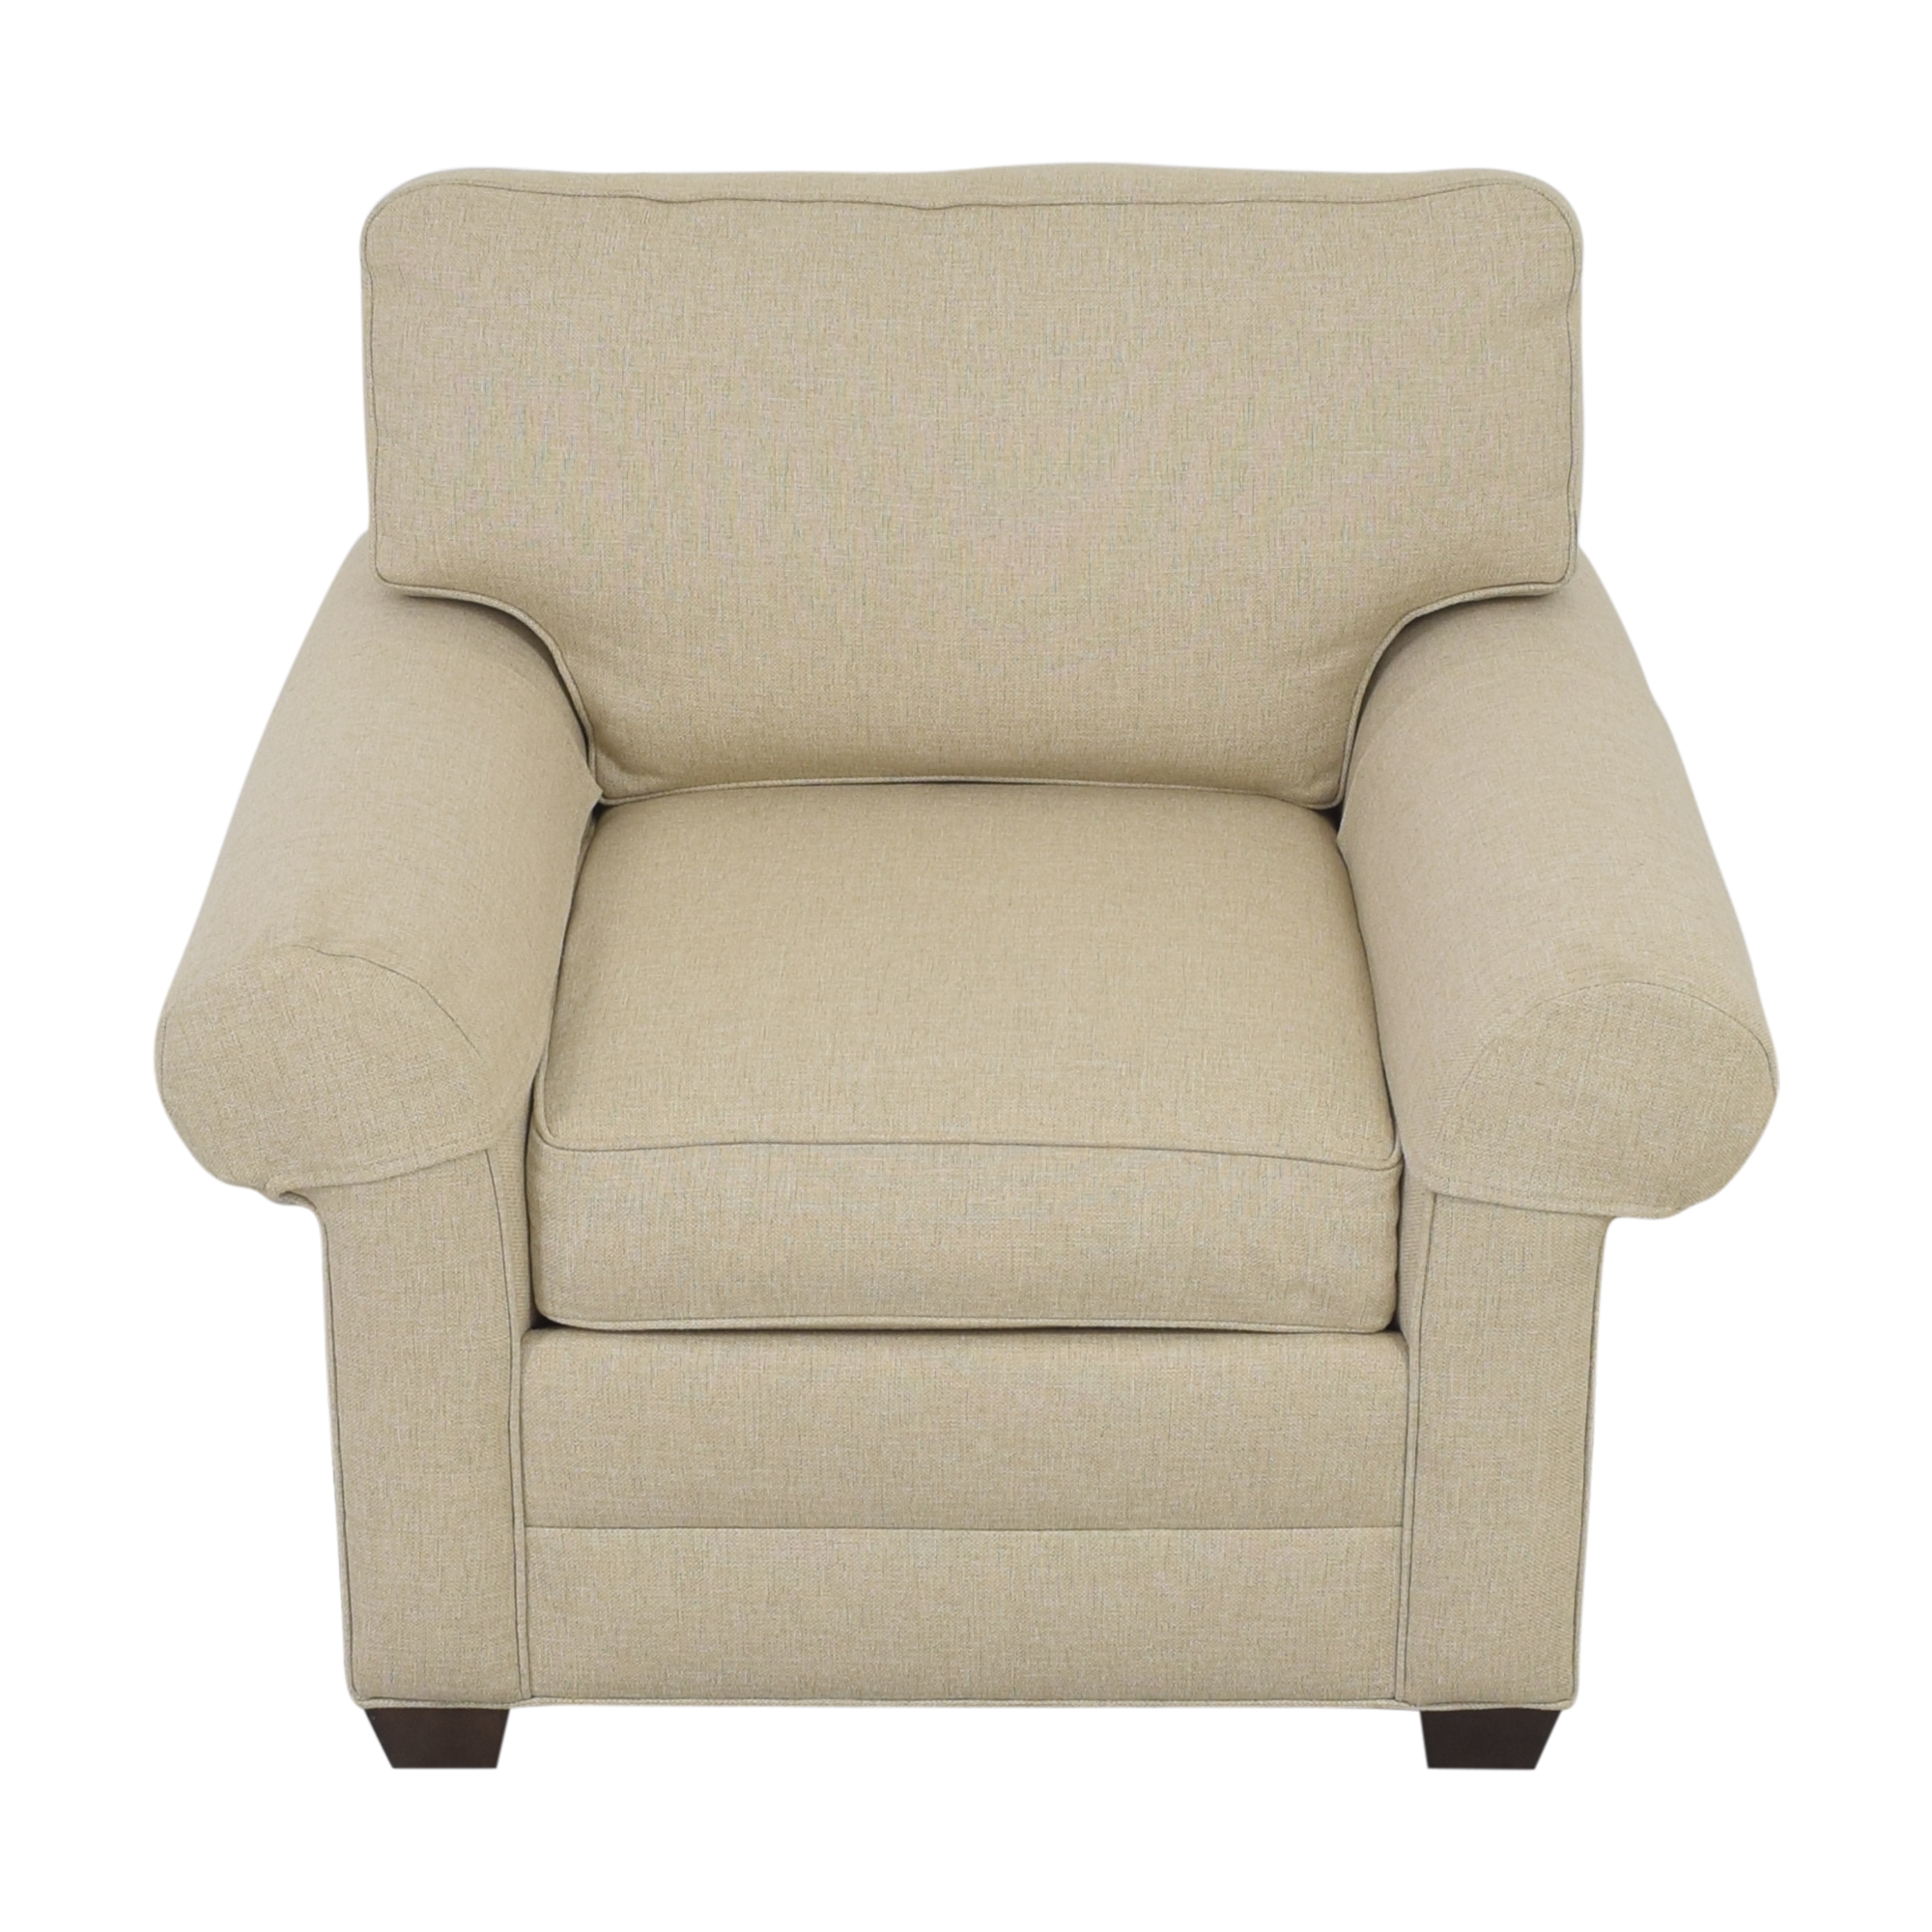 Ethan Allen Roll Arm Accent Chair / Accent Chairs